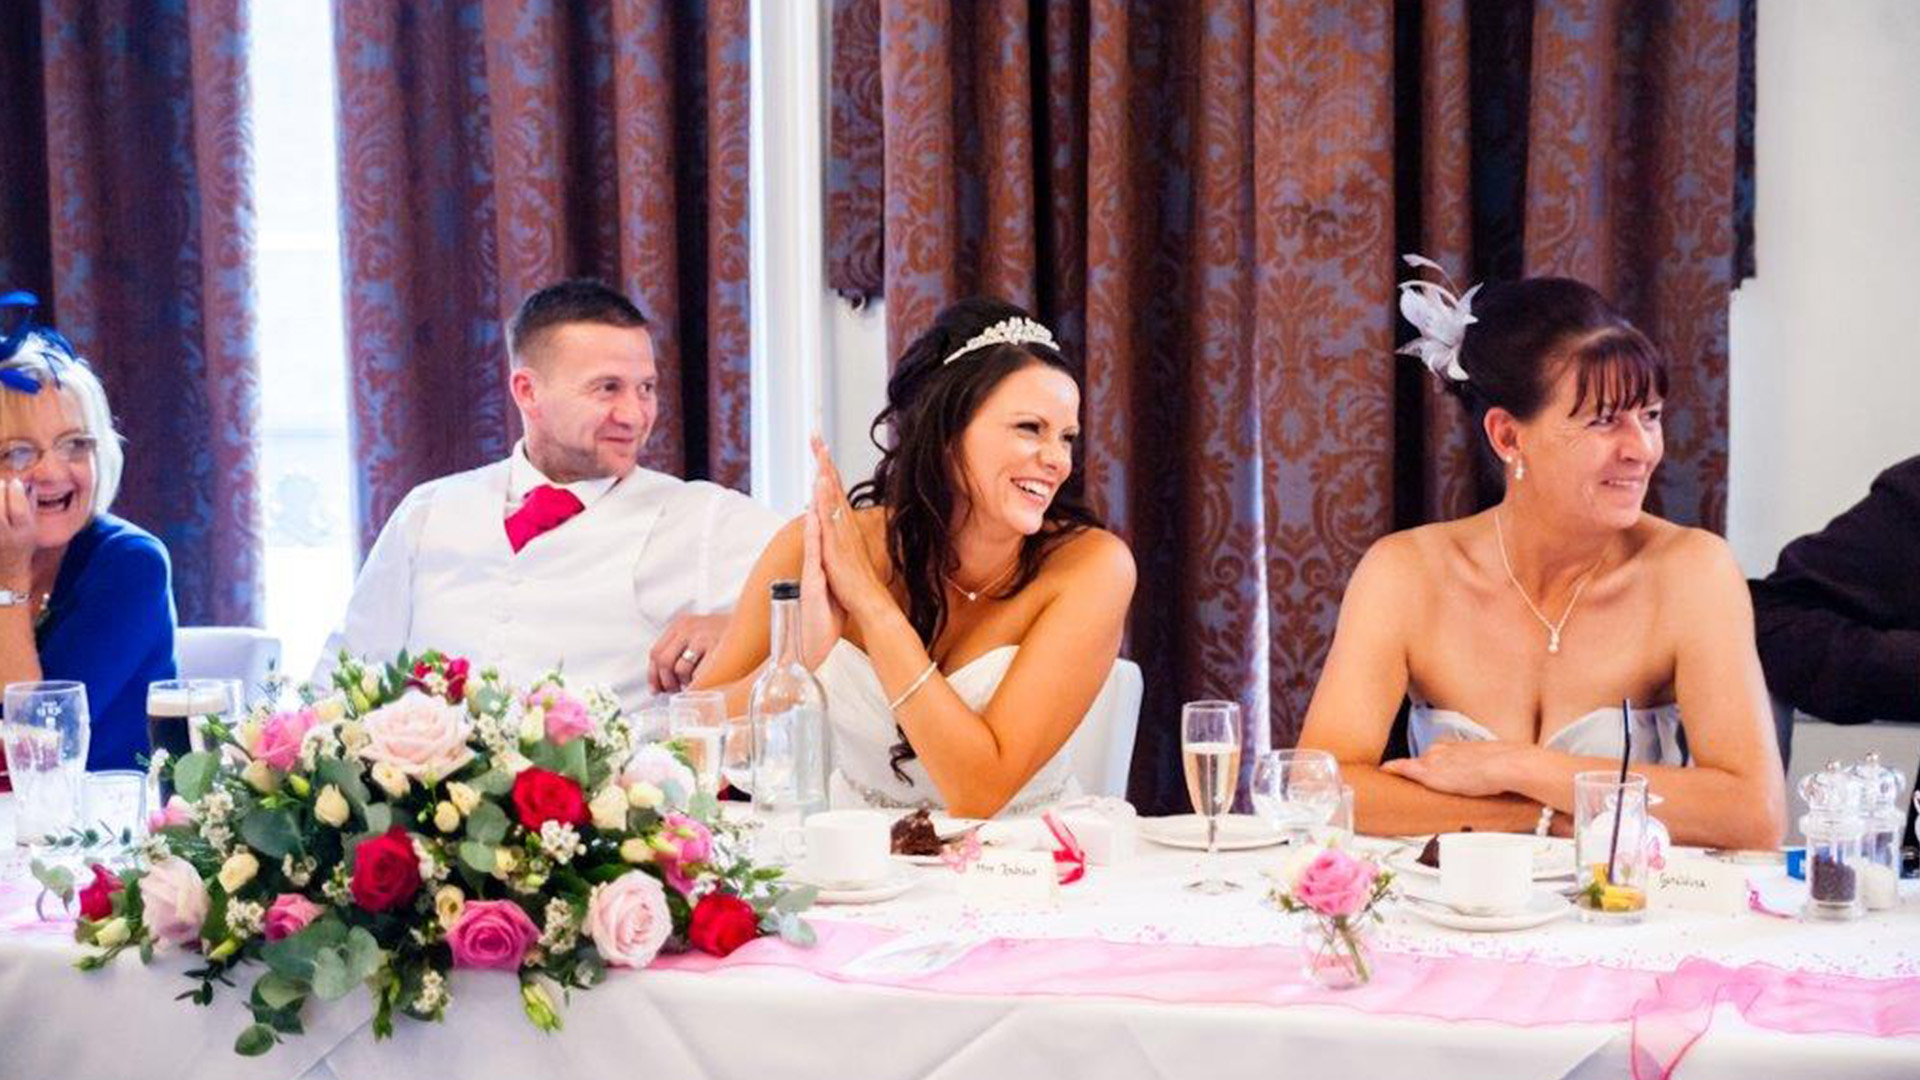 Wedding Venues in Hampshire Mercure Southampton Centre Dolphin Hotel Grand Affair 14